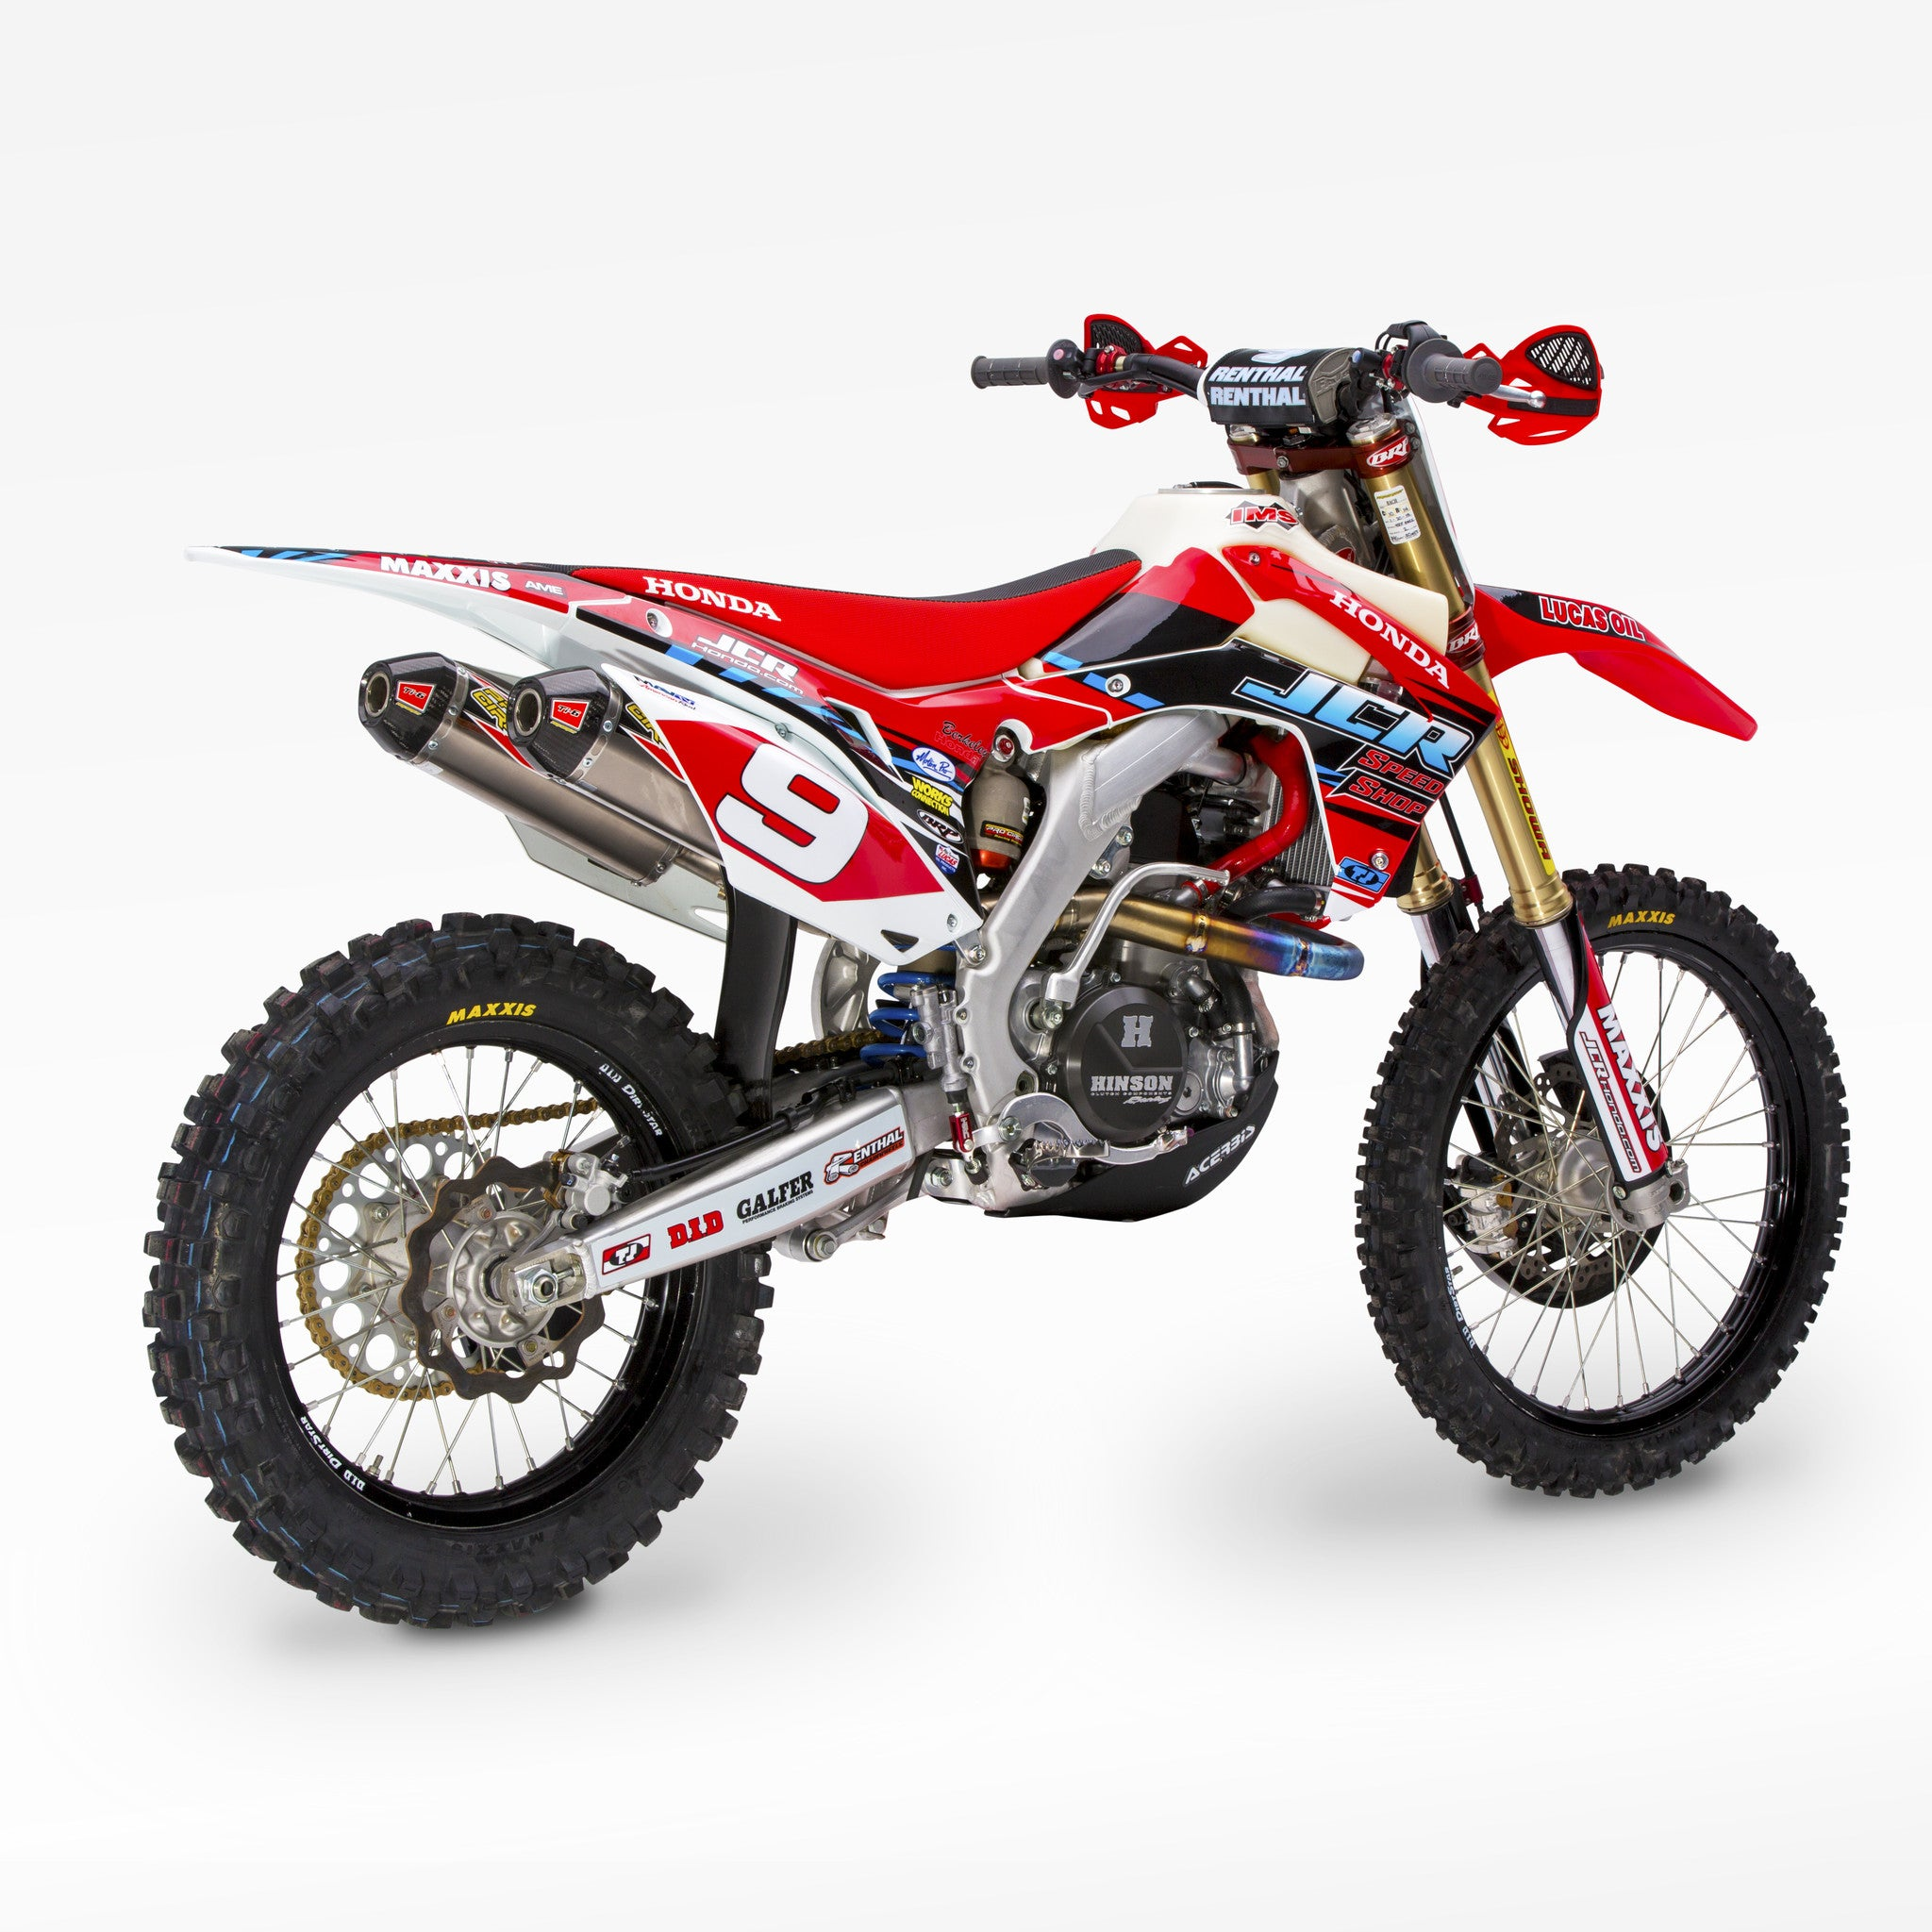 JCR Honda 2015 Race Replica Graphic Kit with number plate backgrounds